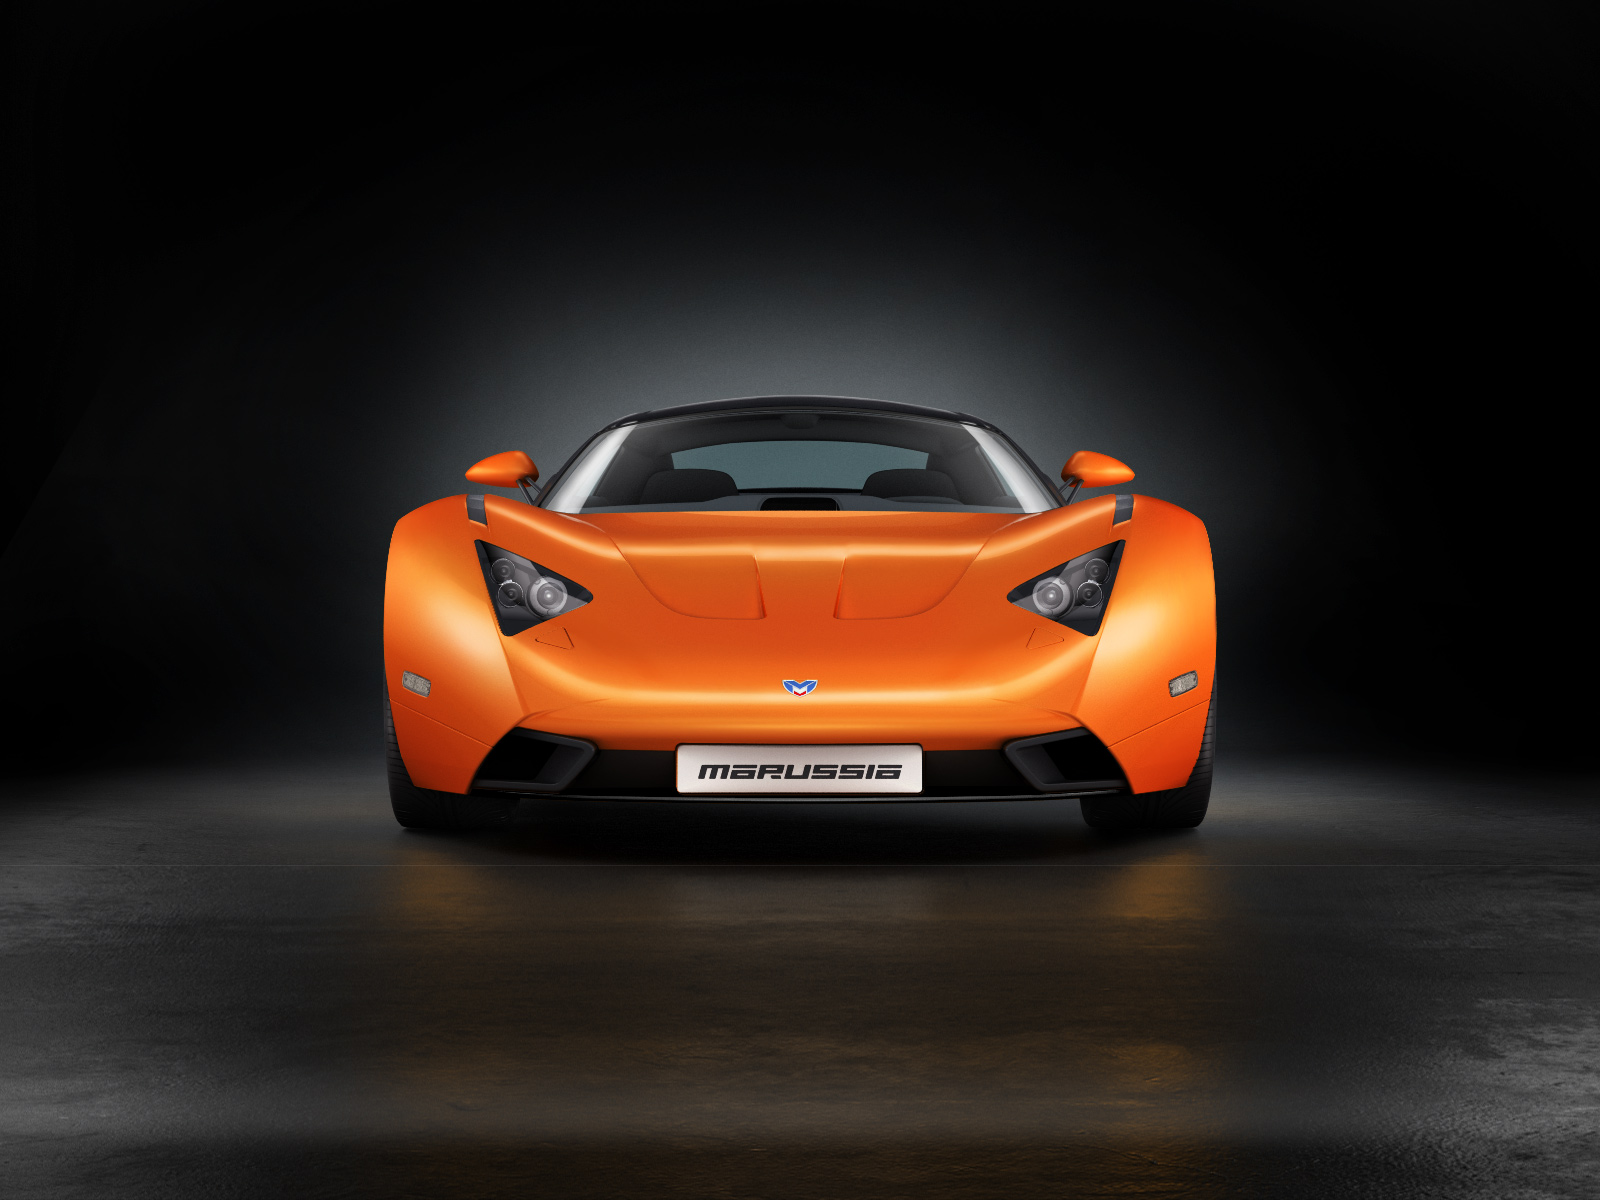 The First Russian Sports Car And First Car Made By Marussia Motors. It Has  A Rear Mid Engine, Rear Wheel Drive Layout. Marussia Has Announced They  Will ...